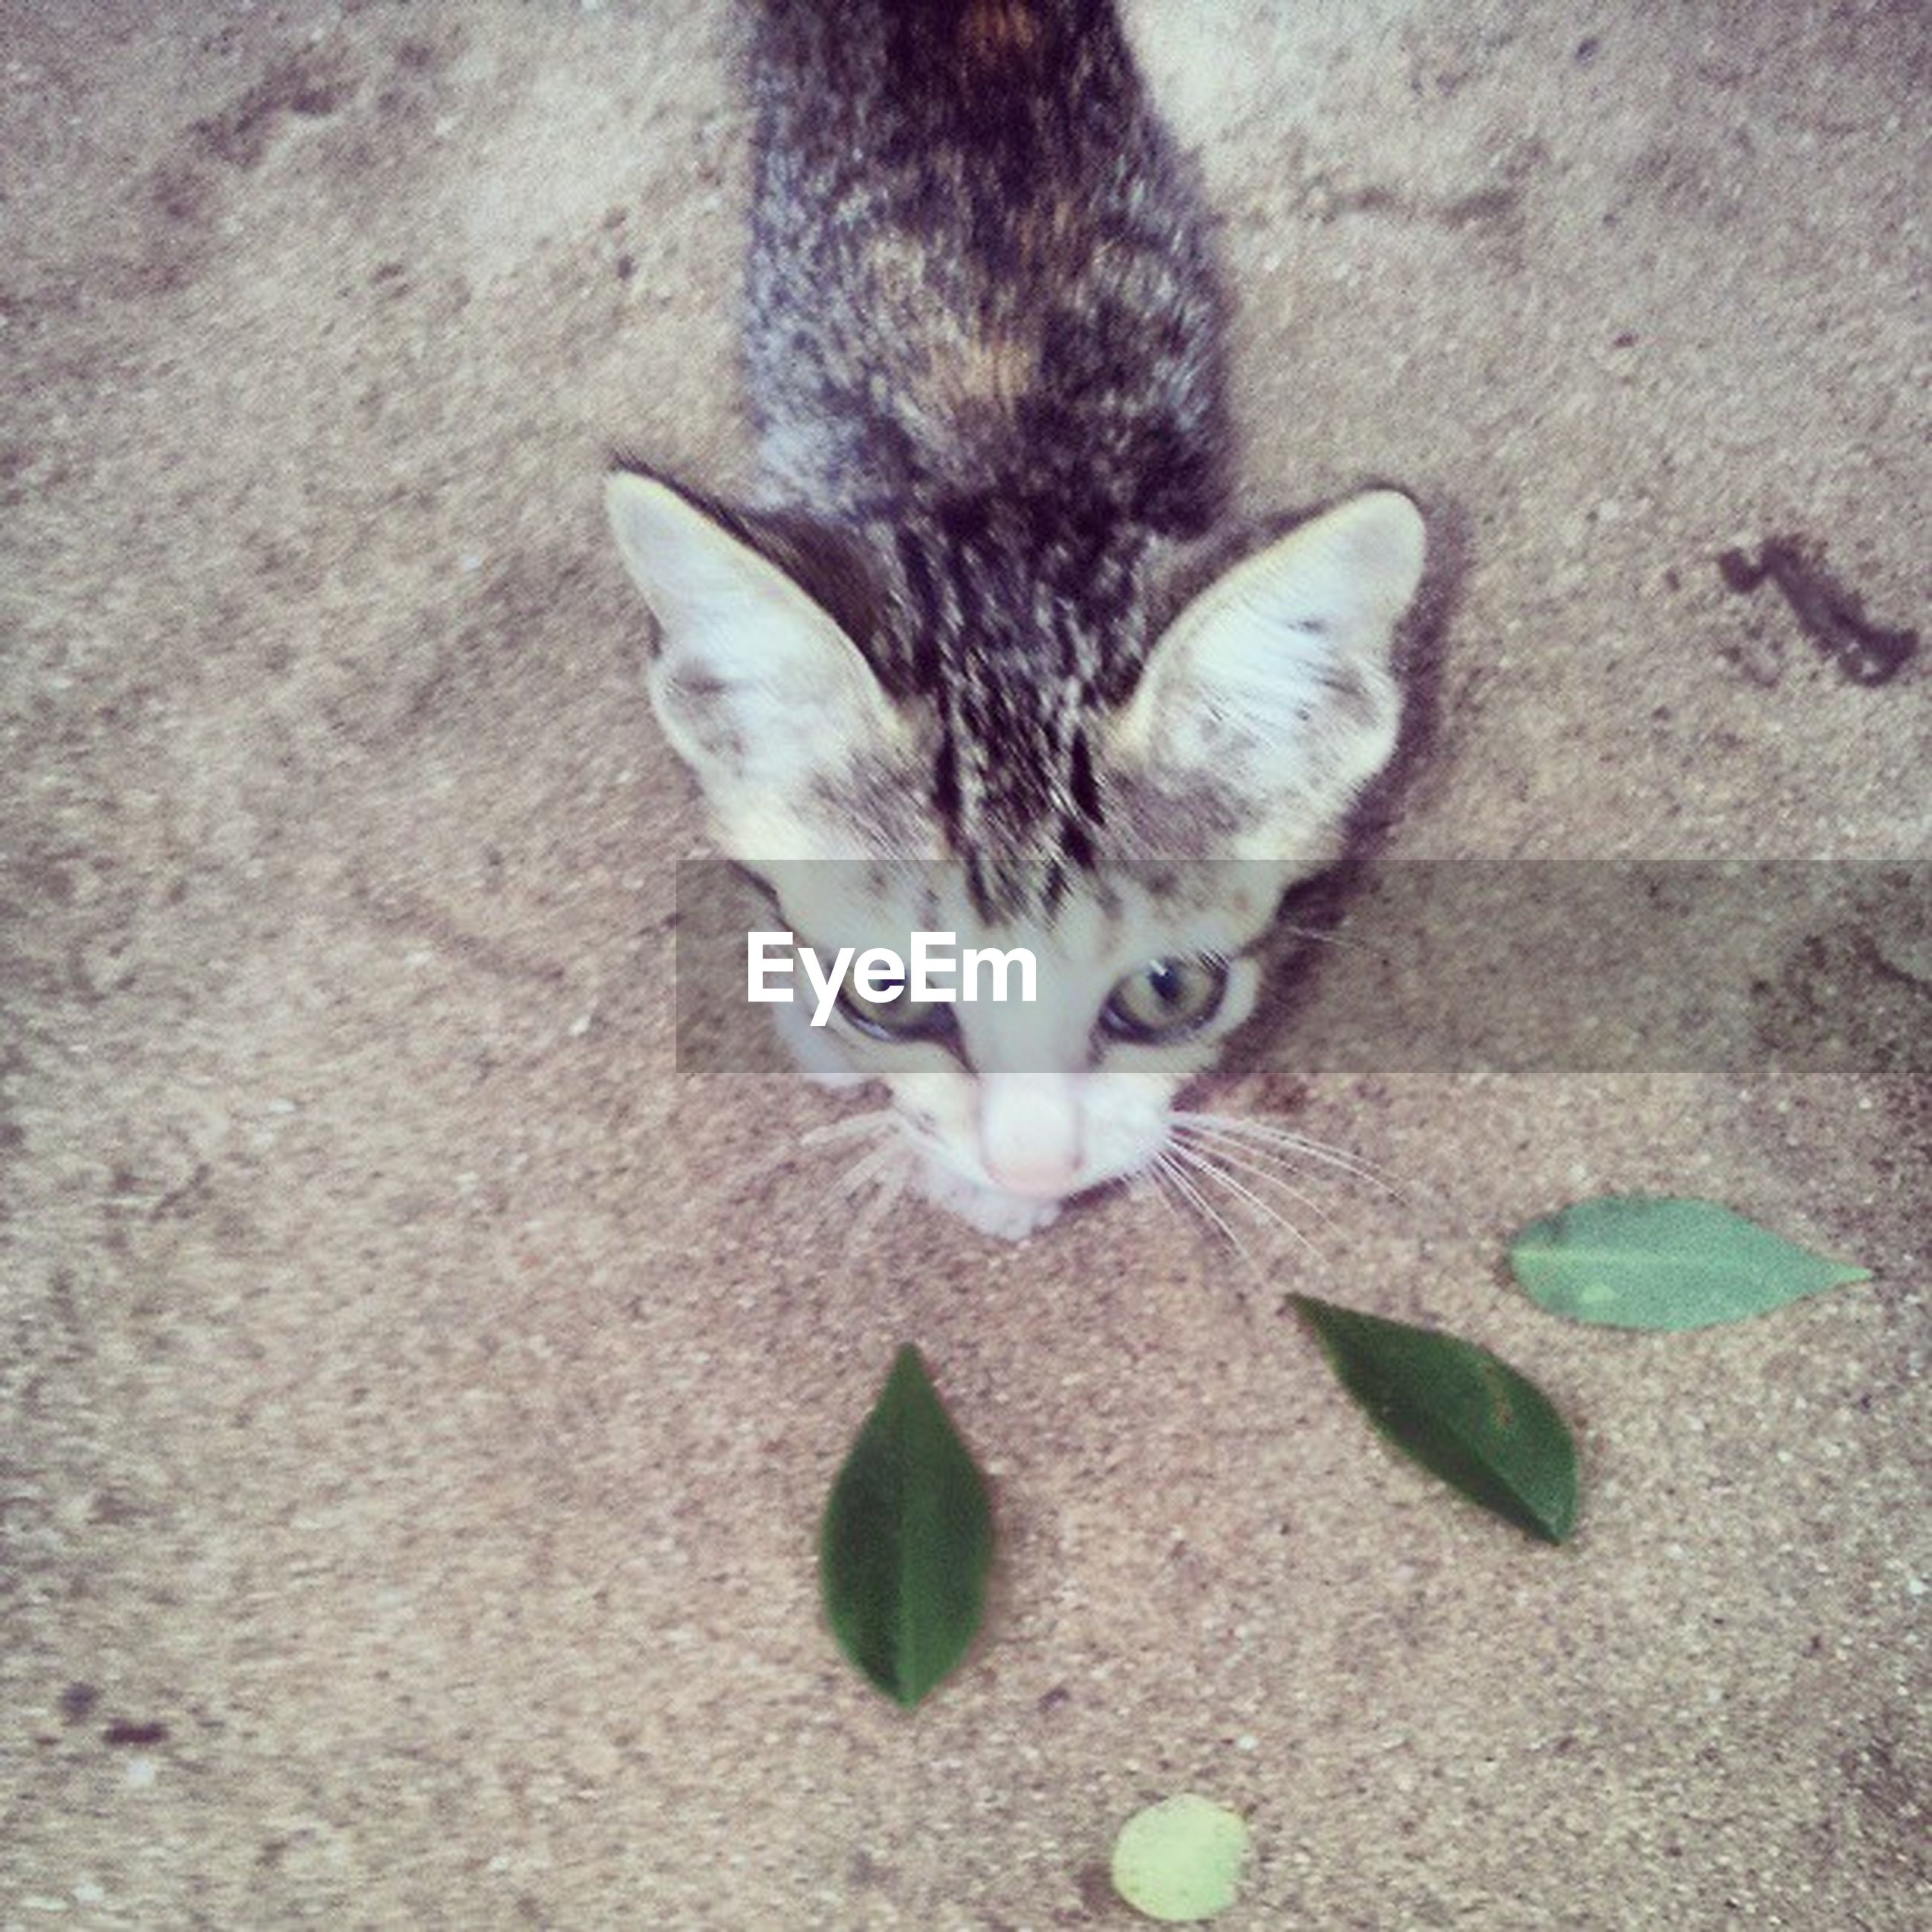 domestic cat, animal themes, cat, one animal, domestic animals, pets, feline, mammal, whisker, portrait, looking at camera, high angle view, alertness, close-up, no people, street, day, relaxation, kitten, outdoors